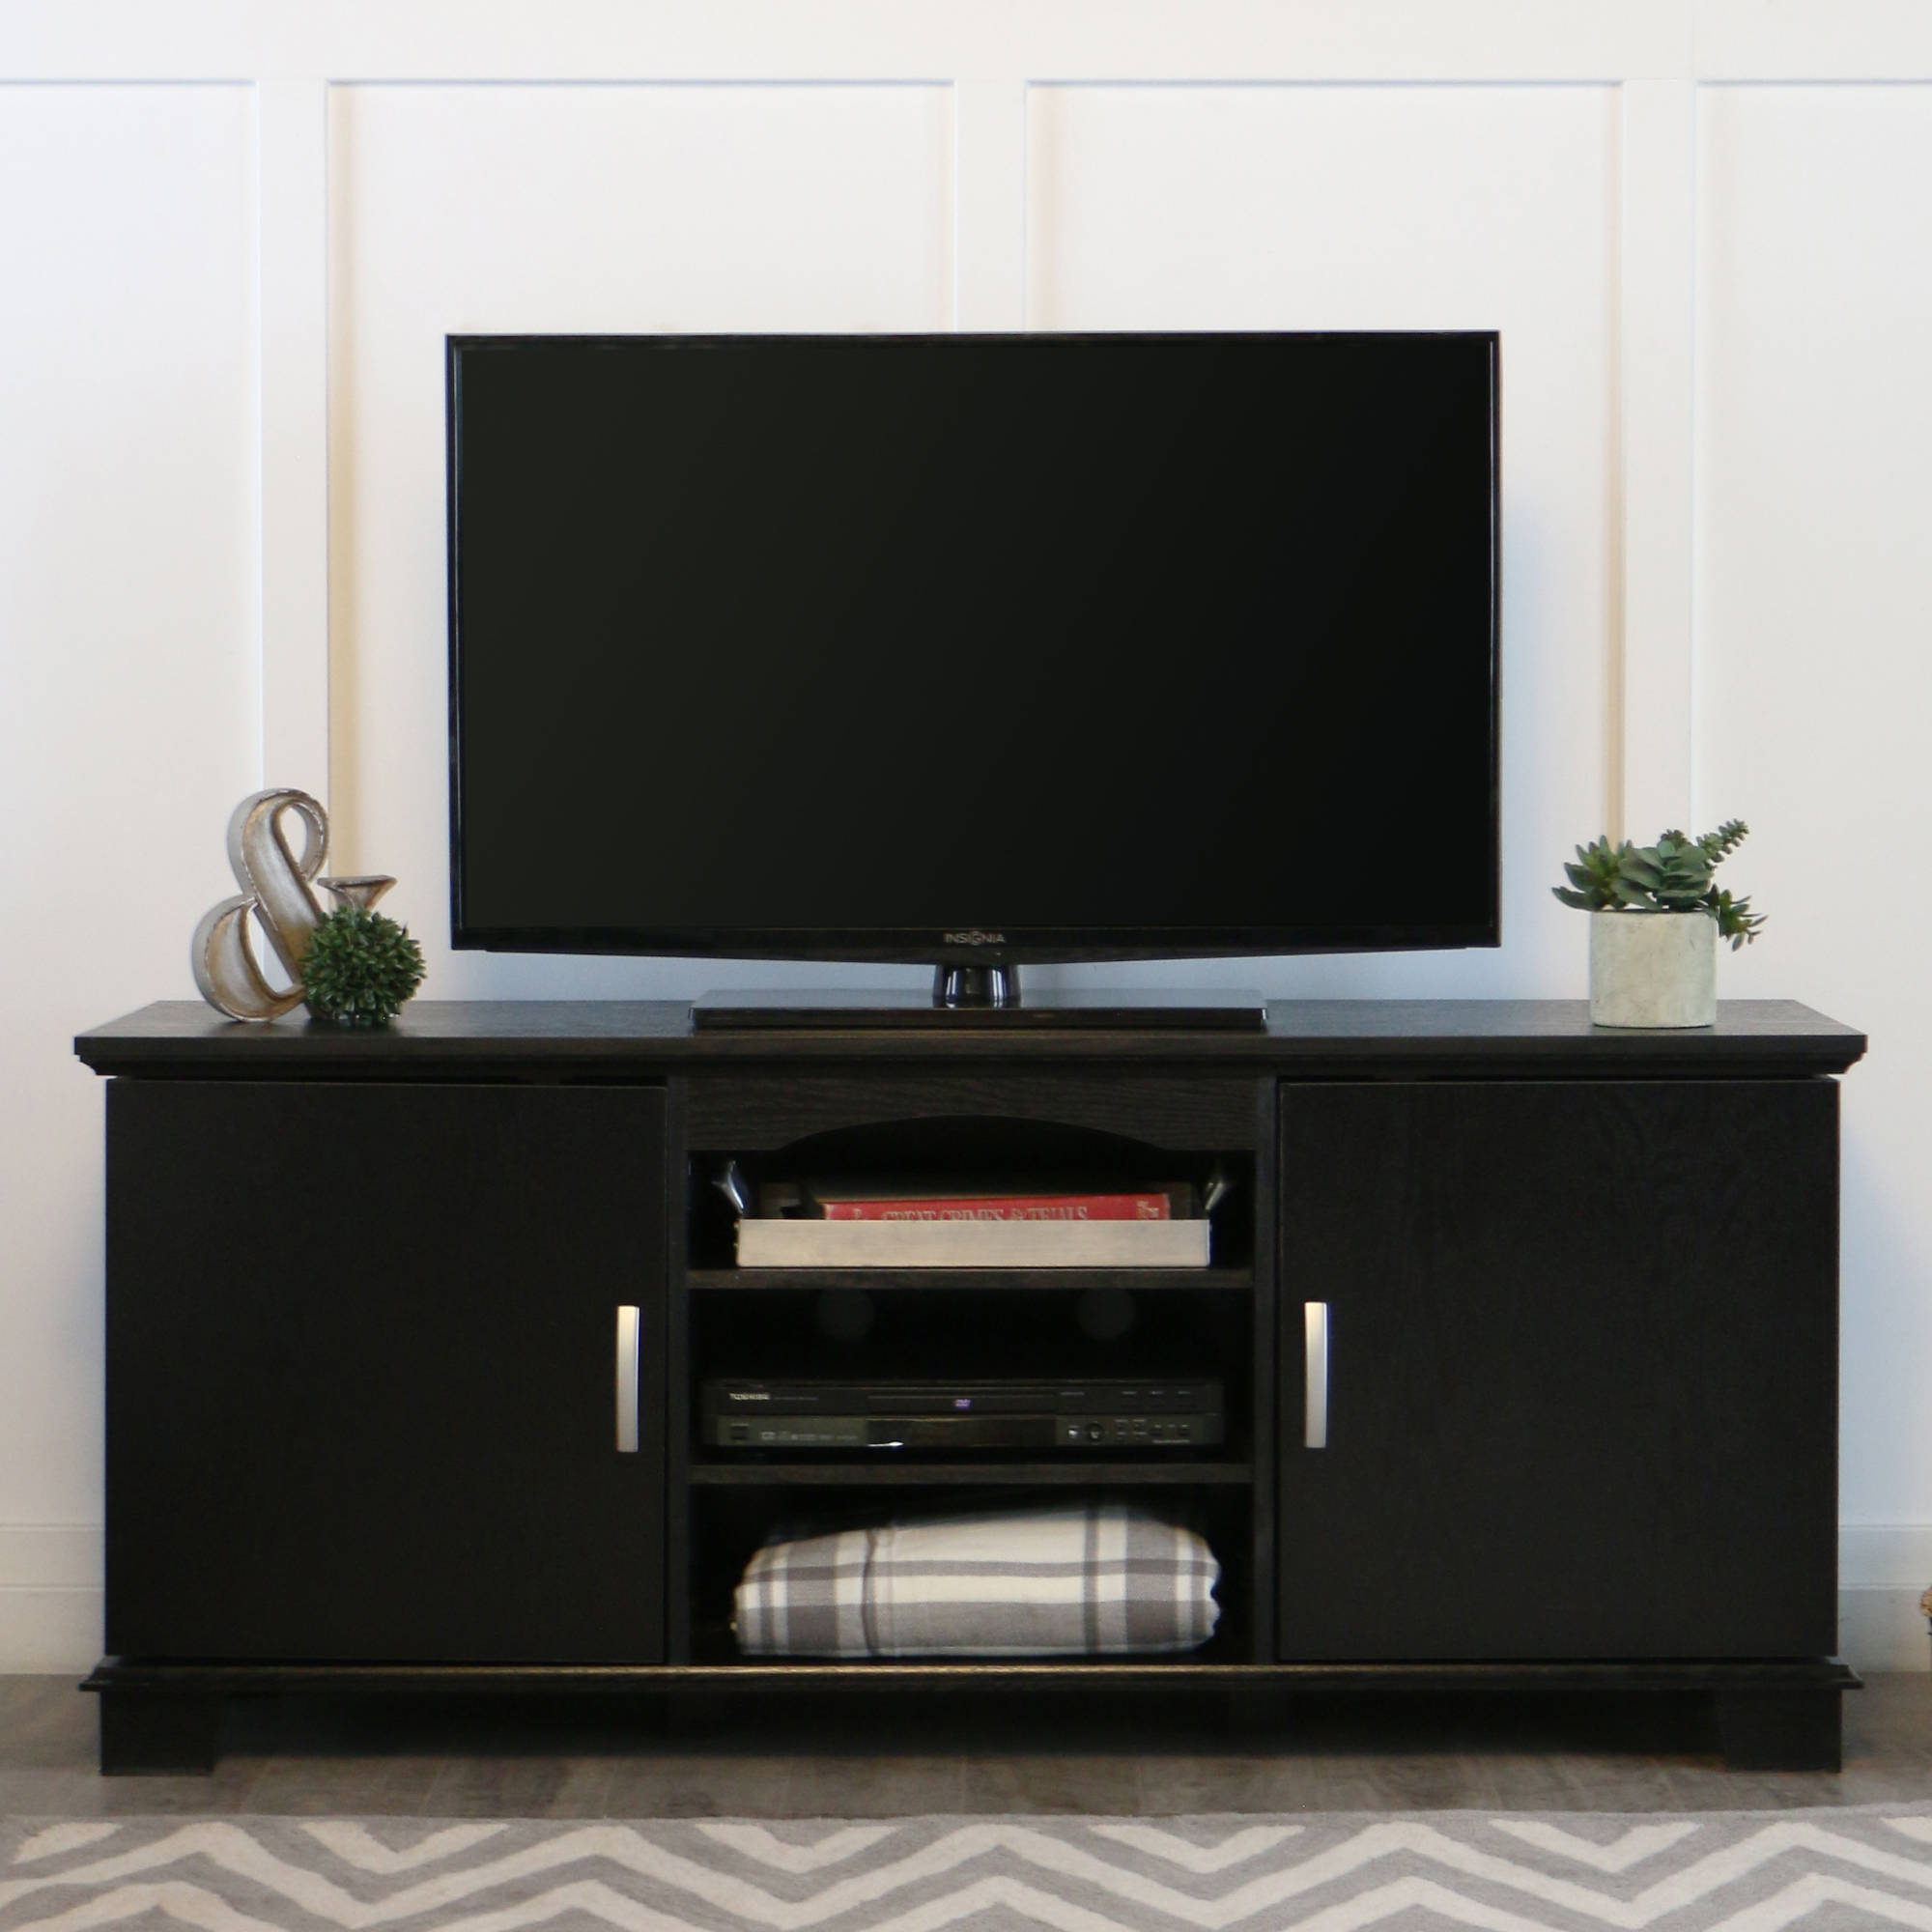 Excellent Espresso Tv Console 29 4845 Jpg V 1525464439 | Gacwar regarding Oxford 70 Inch Tv Stands (Image 12 of 30)